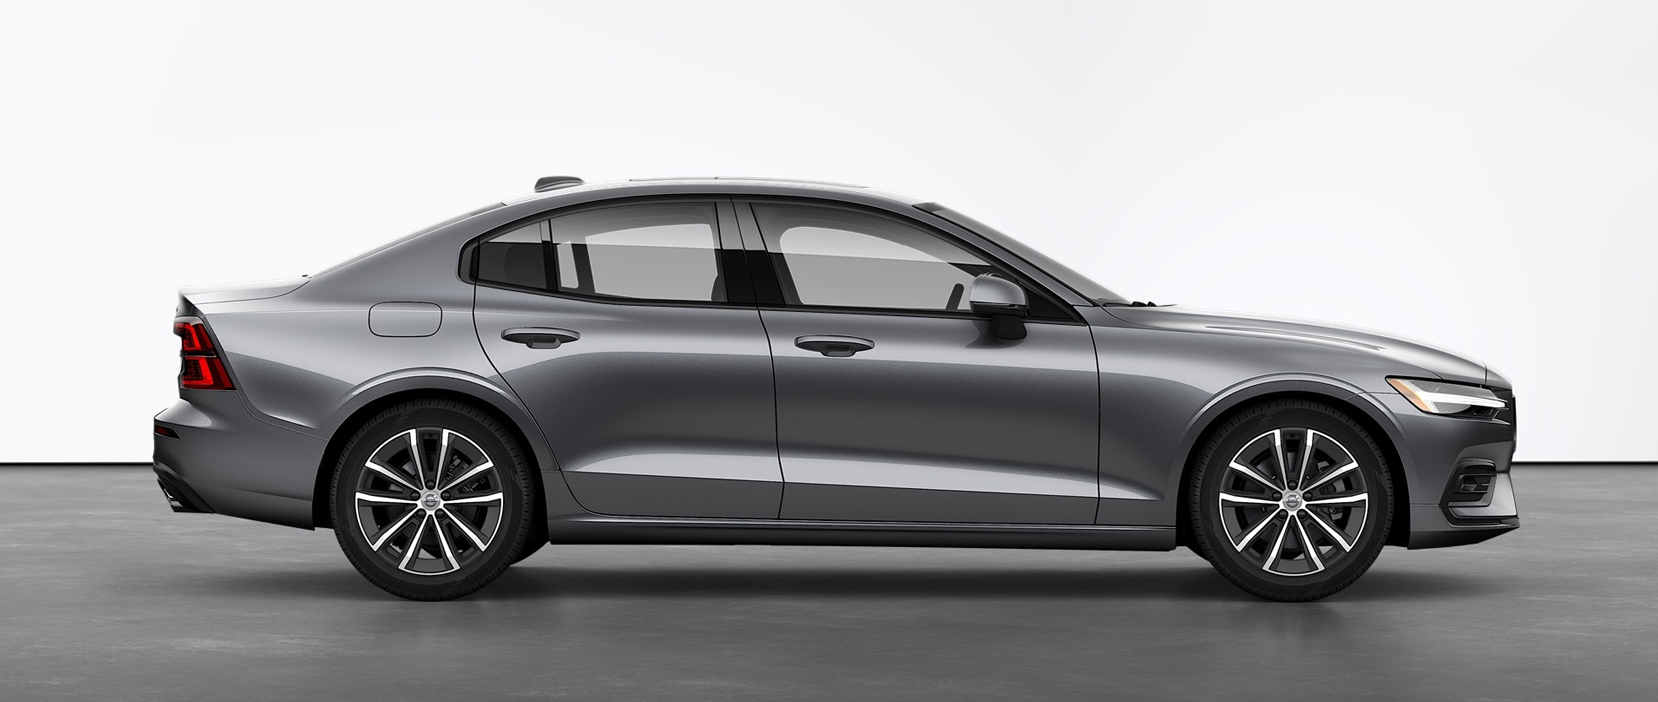 2021 Volvo S60 T6 Momentum shown